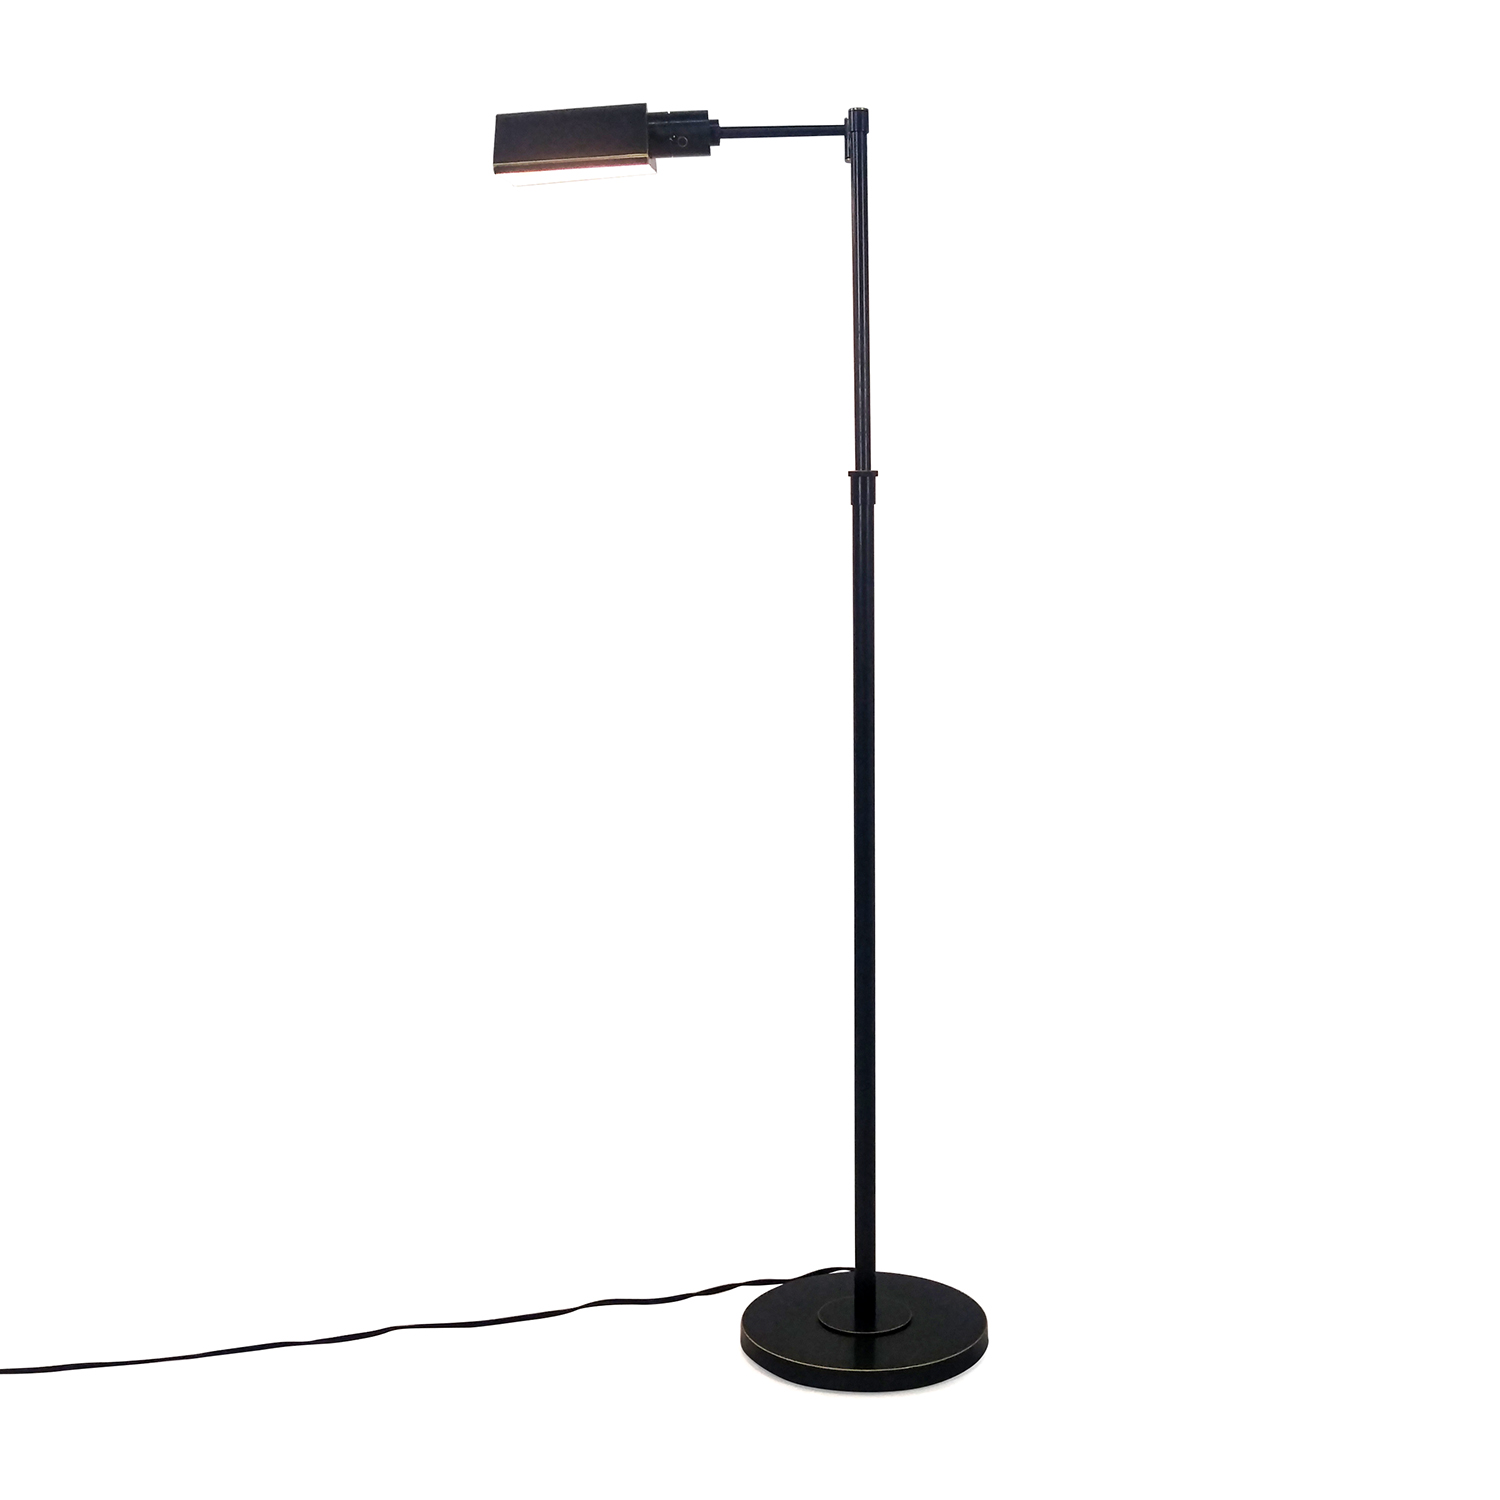 Adjustable Floor Lamp in Copper Finish on sale